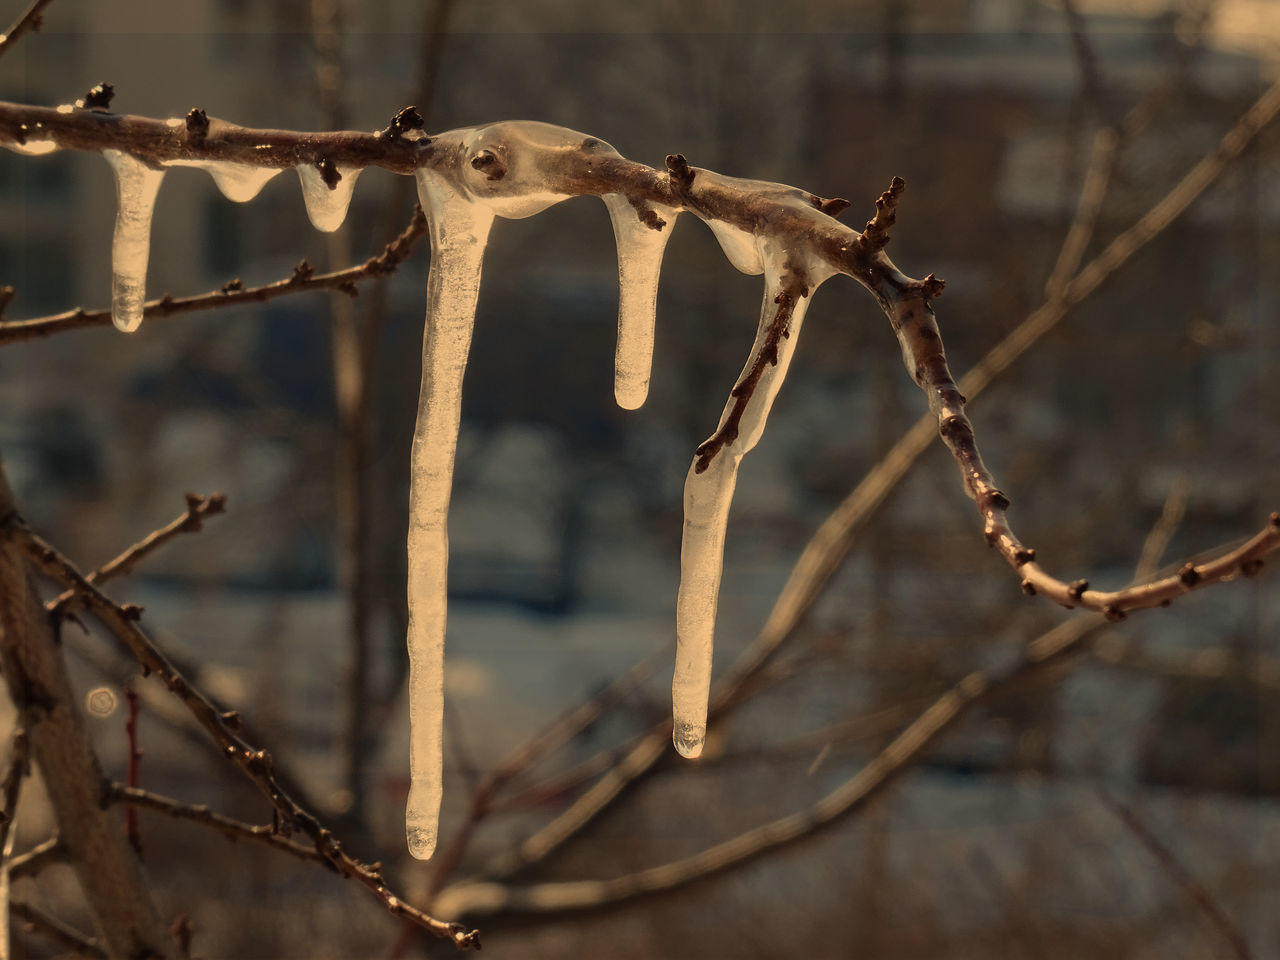 dead plant, outdoors, dried plant, day, close-up, focus on foreground, nature, no people, animal bone, plant, beauty in nature